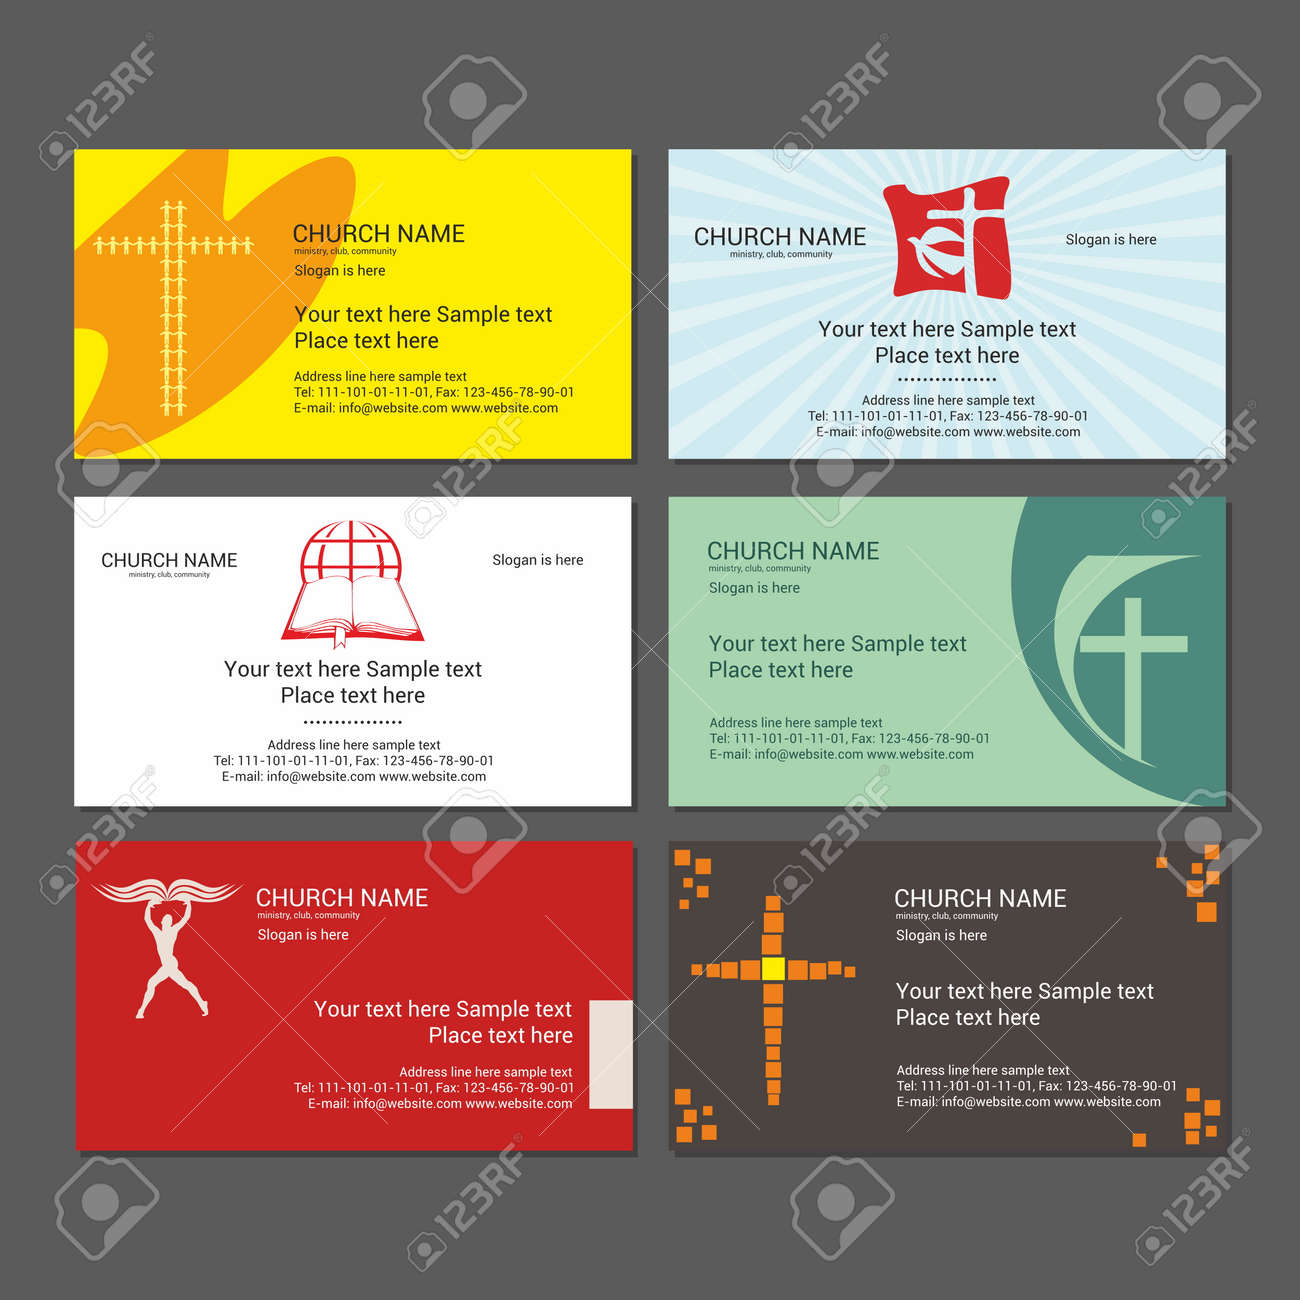 Pirate business cards images free business cards 123 business cards choice image free business cards pirate business cards images free business cards momo magicingreecefo Images